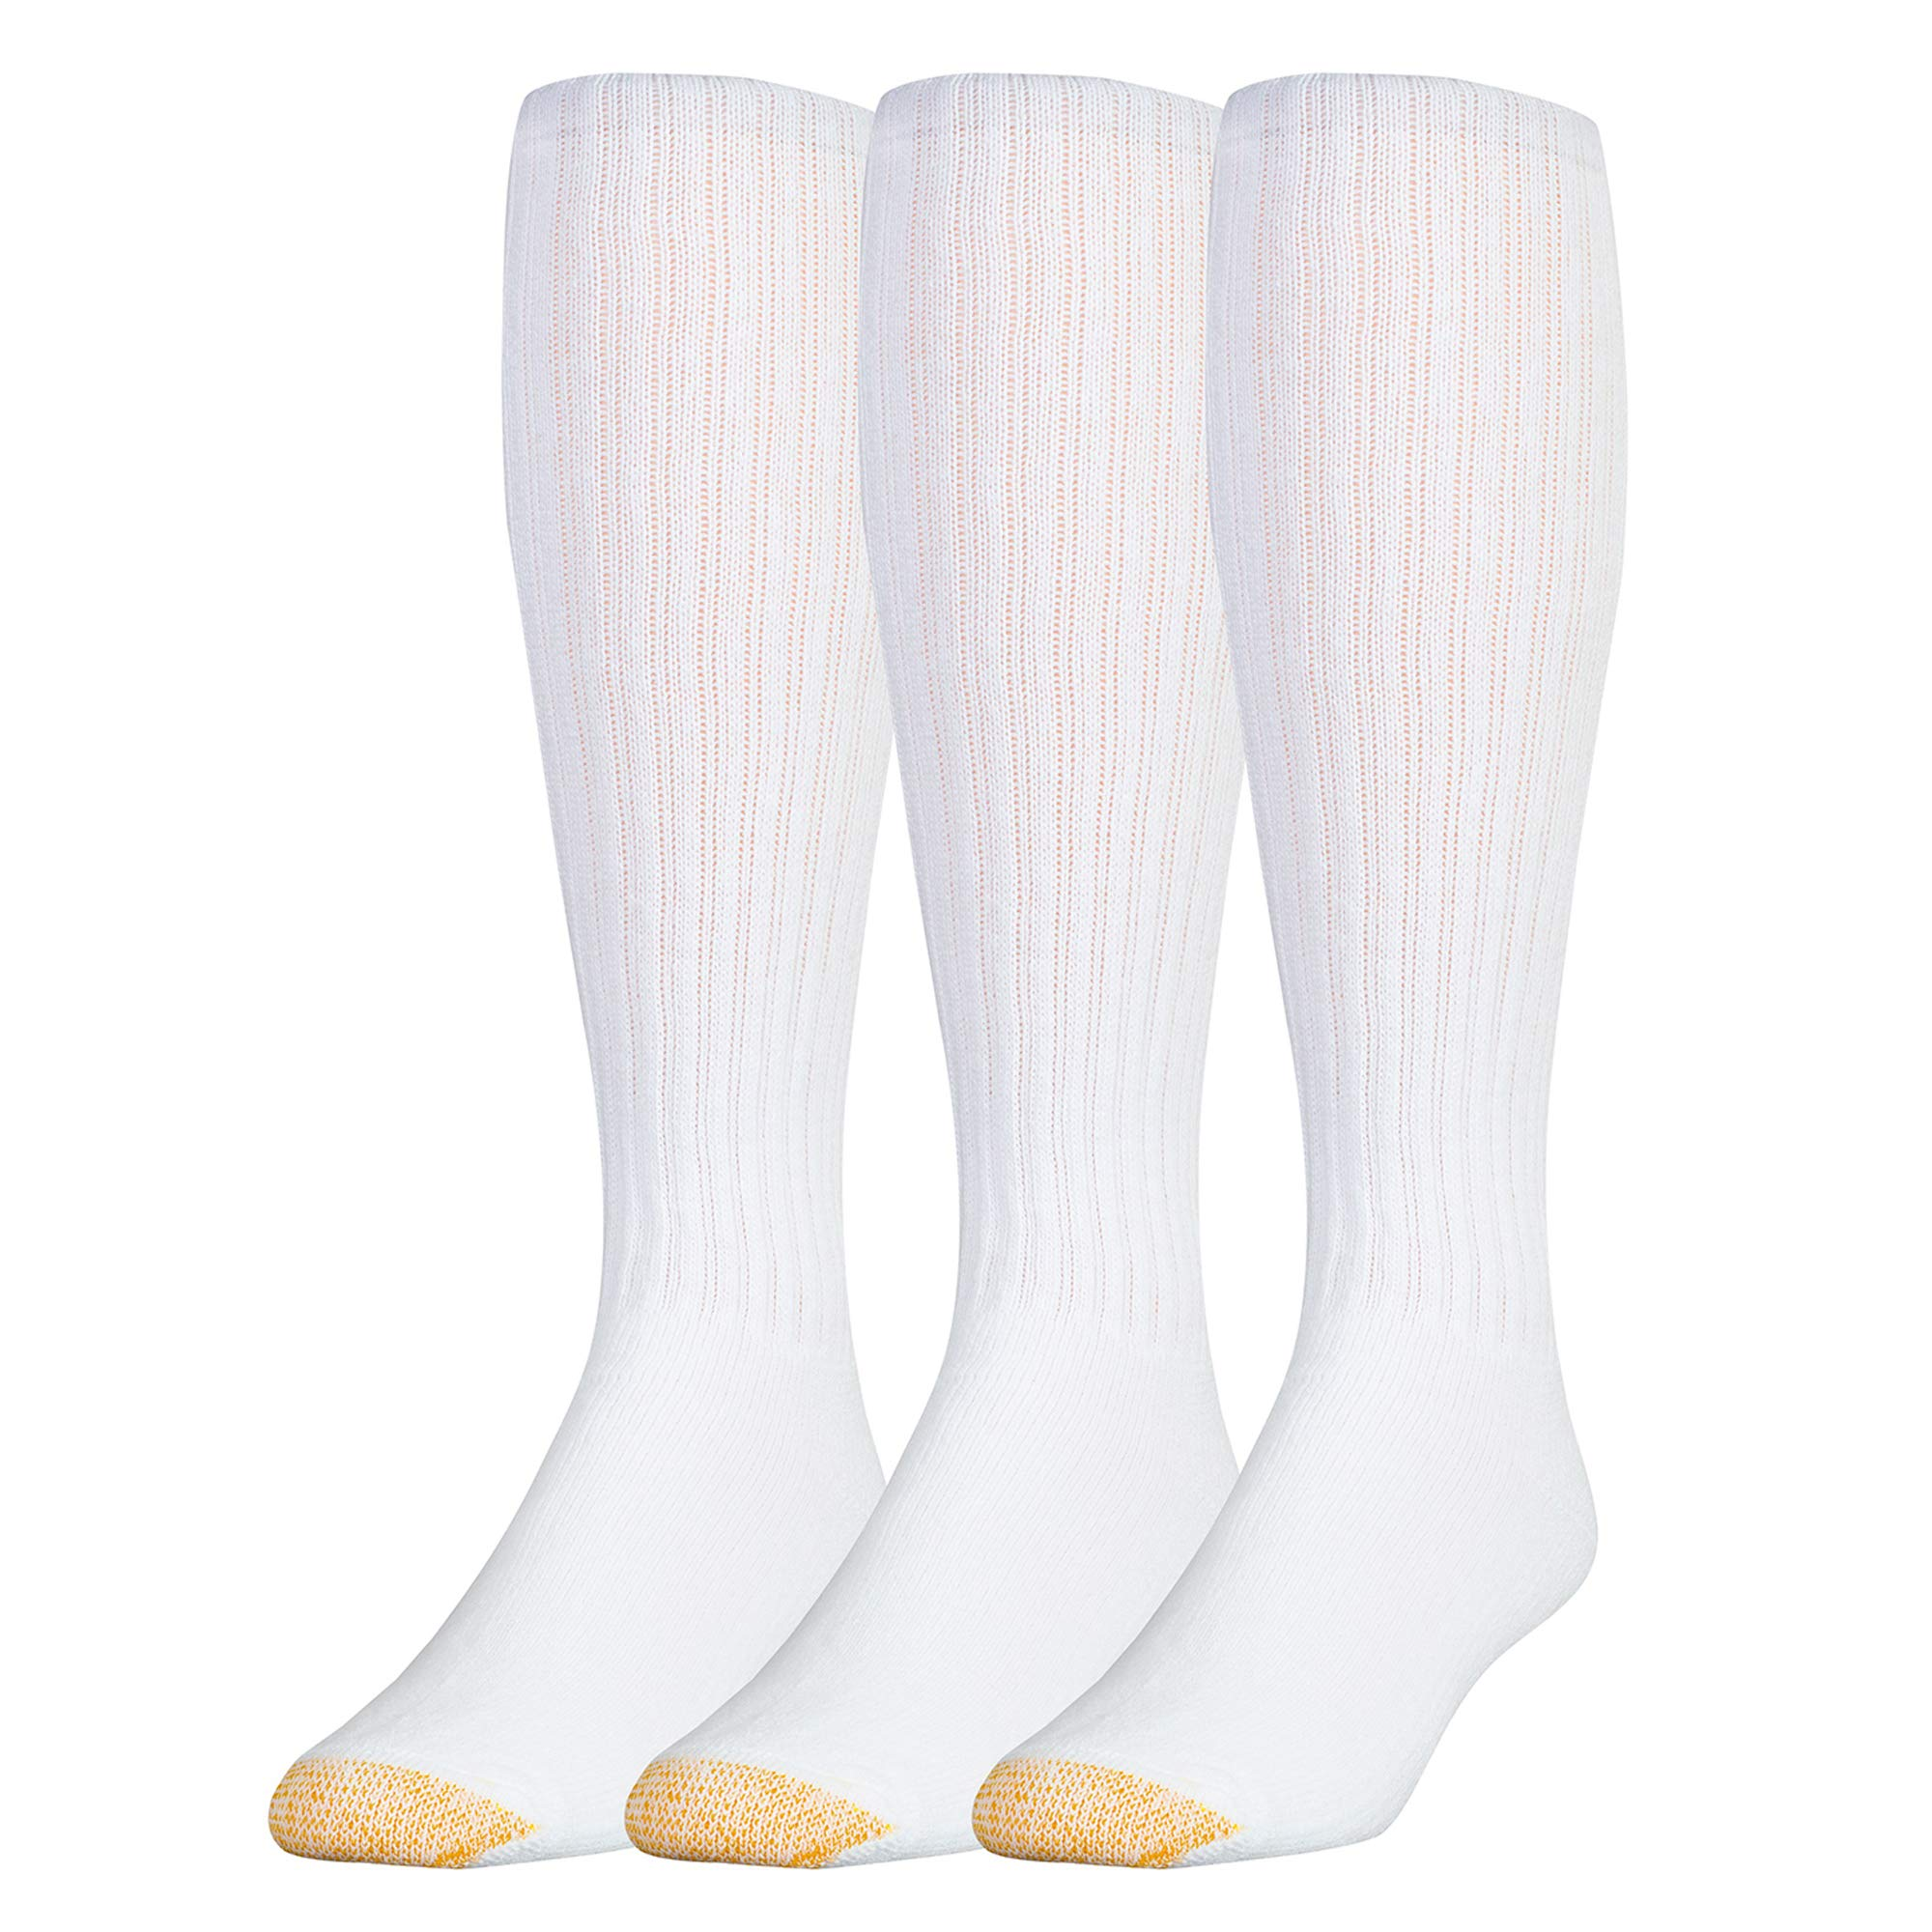 7013404f1b697 Gold Toe Men's Ultra Tec Performance Over The Calf Athletic Socks, 3-Pack  product